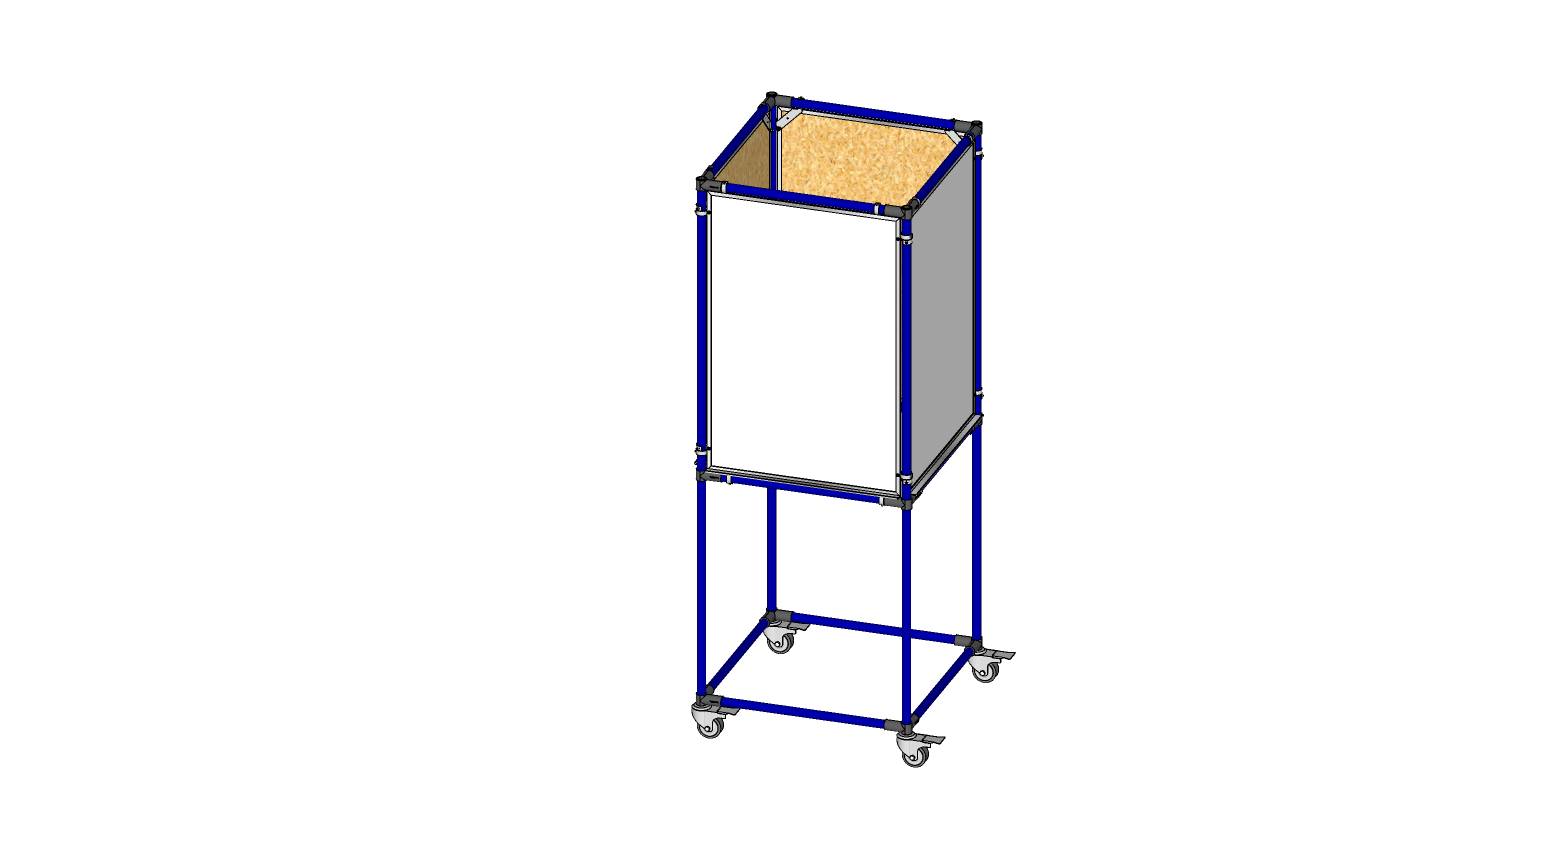 4 SIDED 2' X 3' WHITHE BOARD